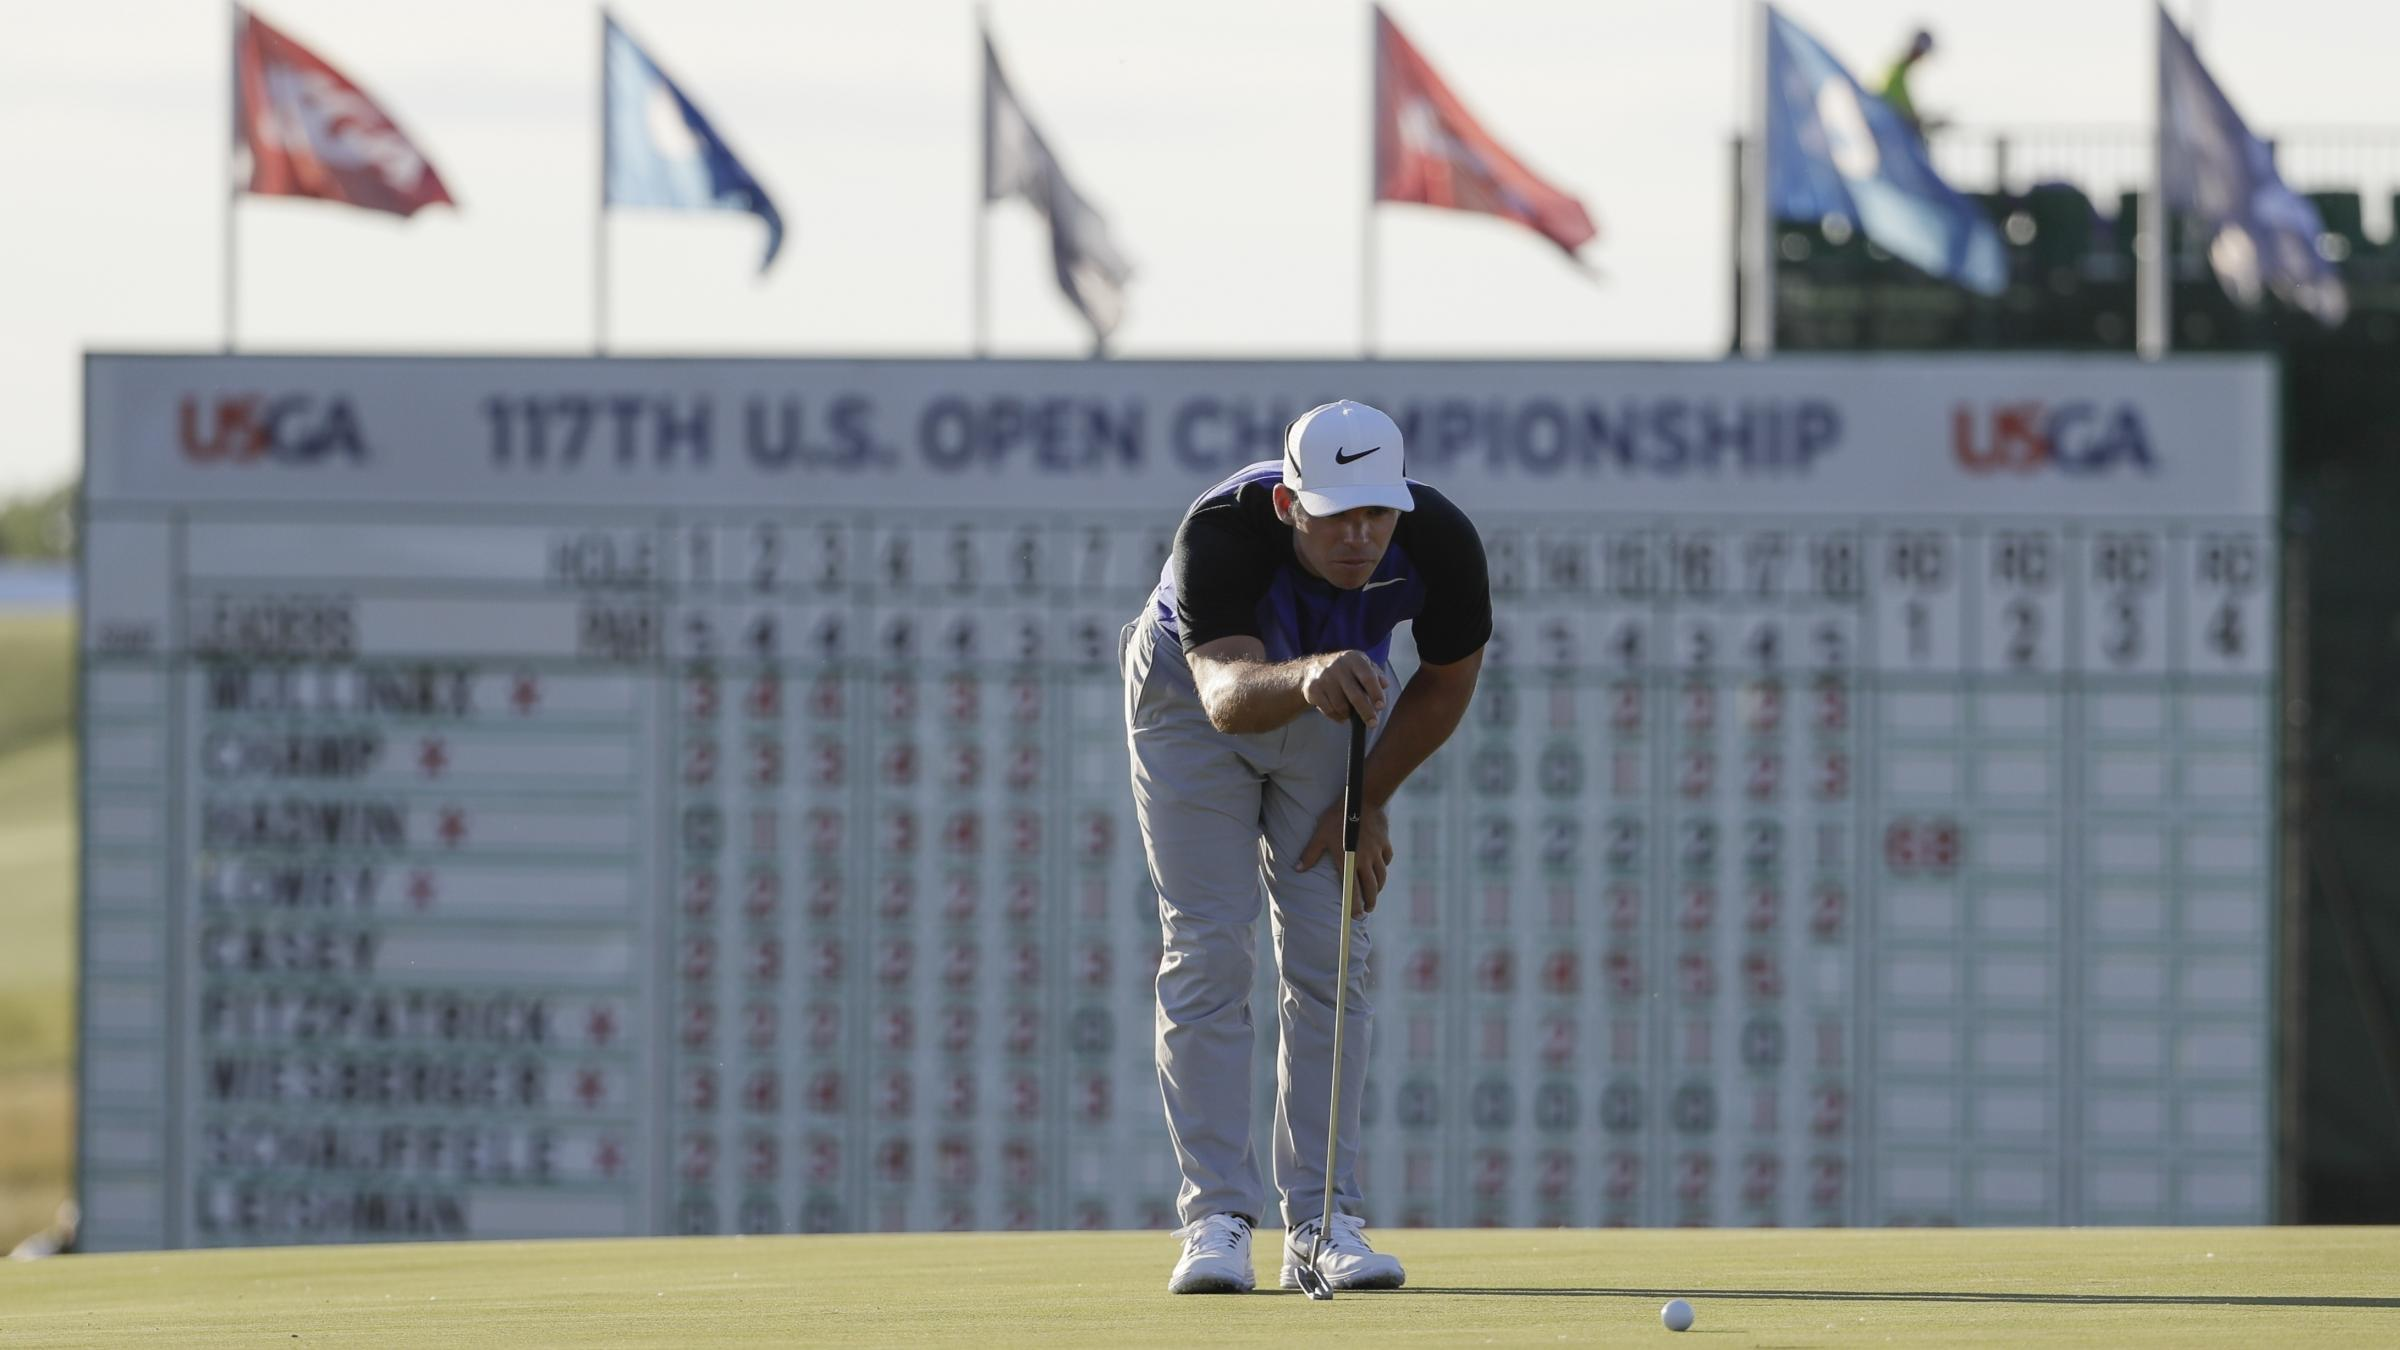 Kentuckian Justin Thomas uses record round to grab US Open lead